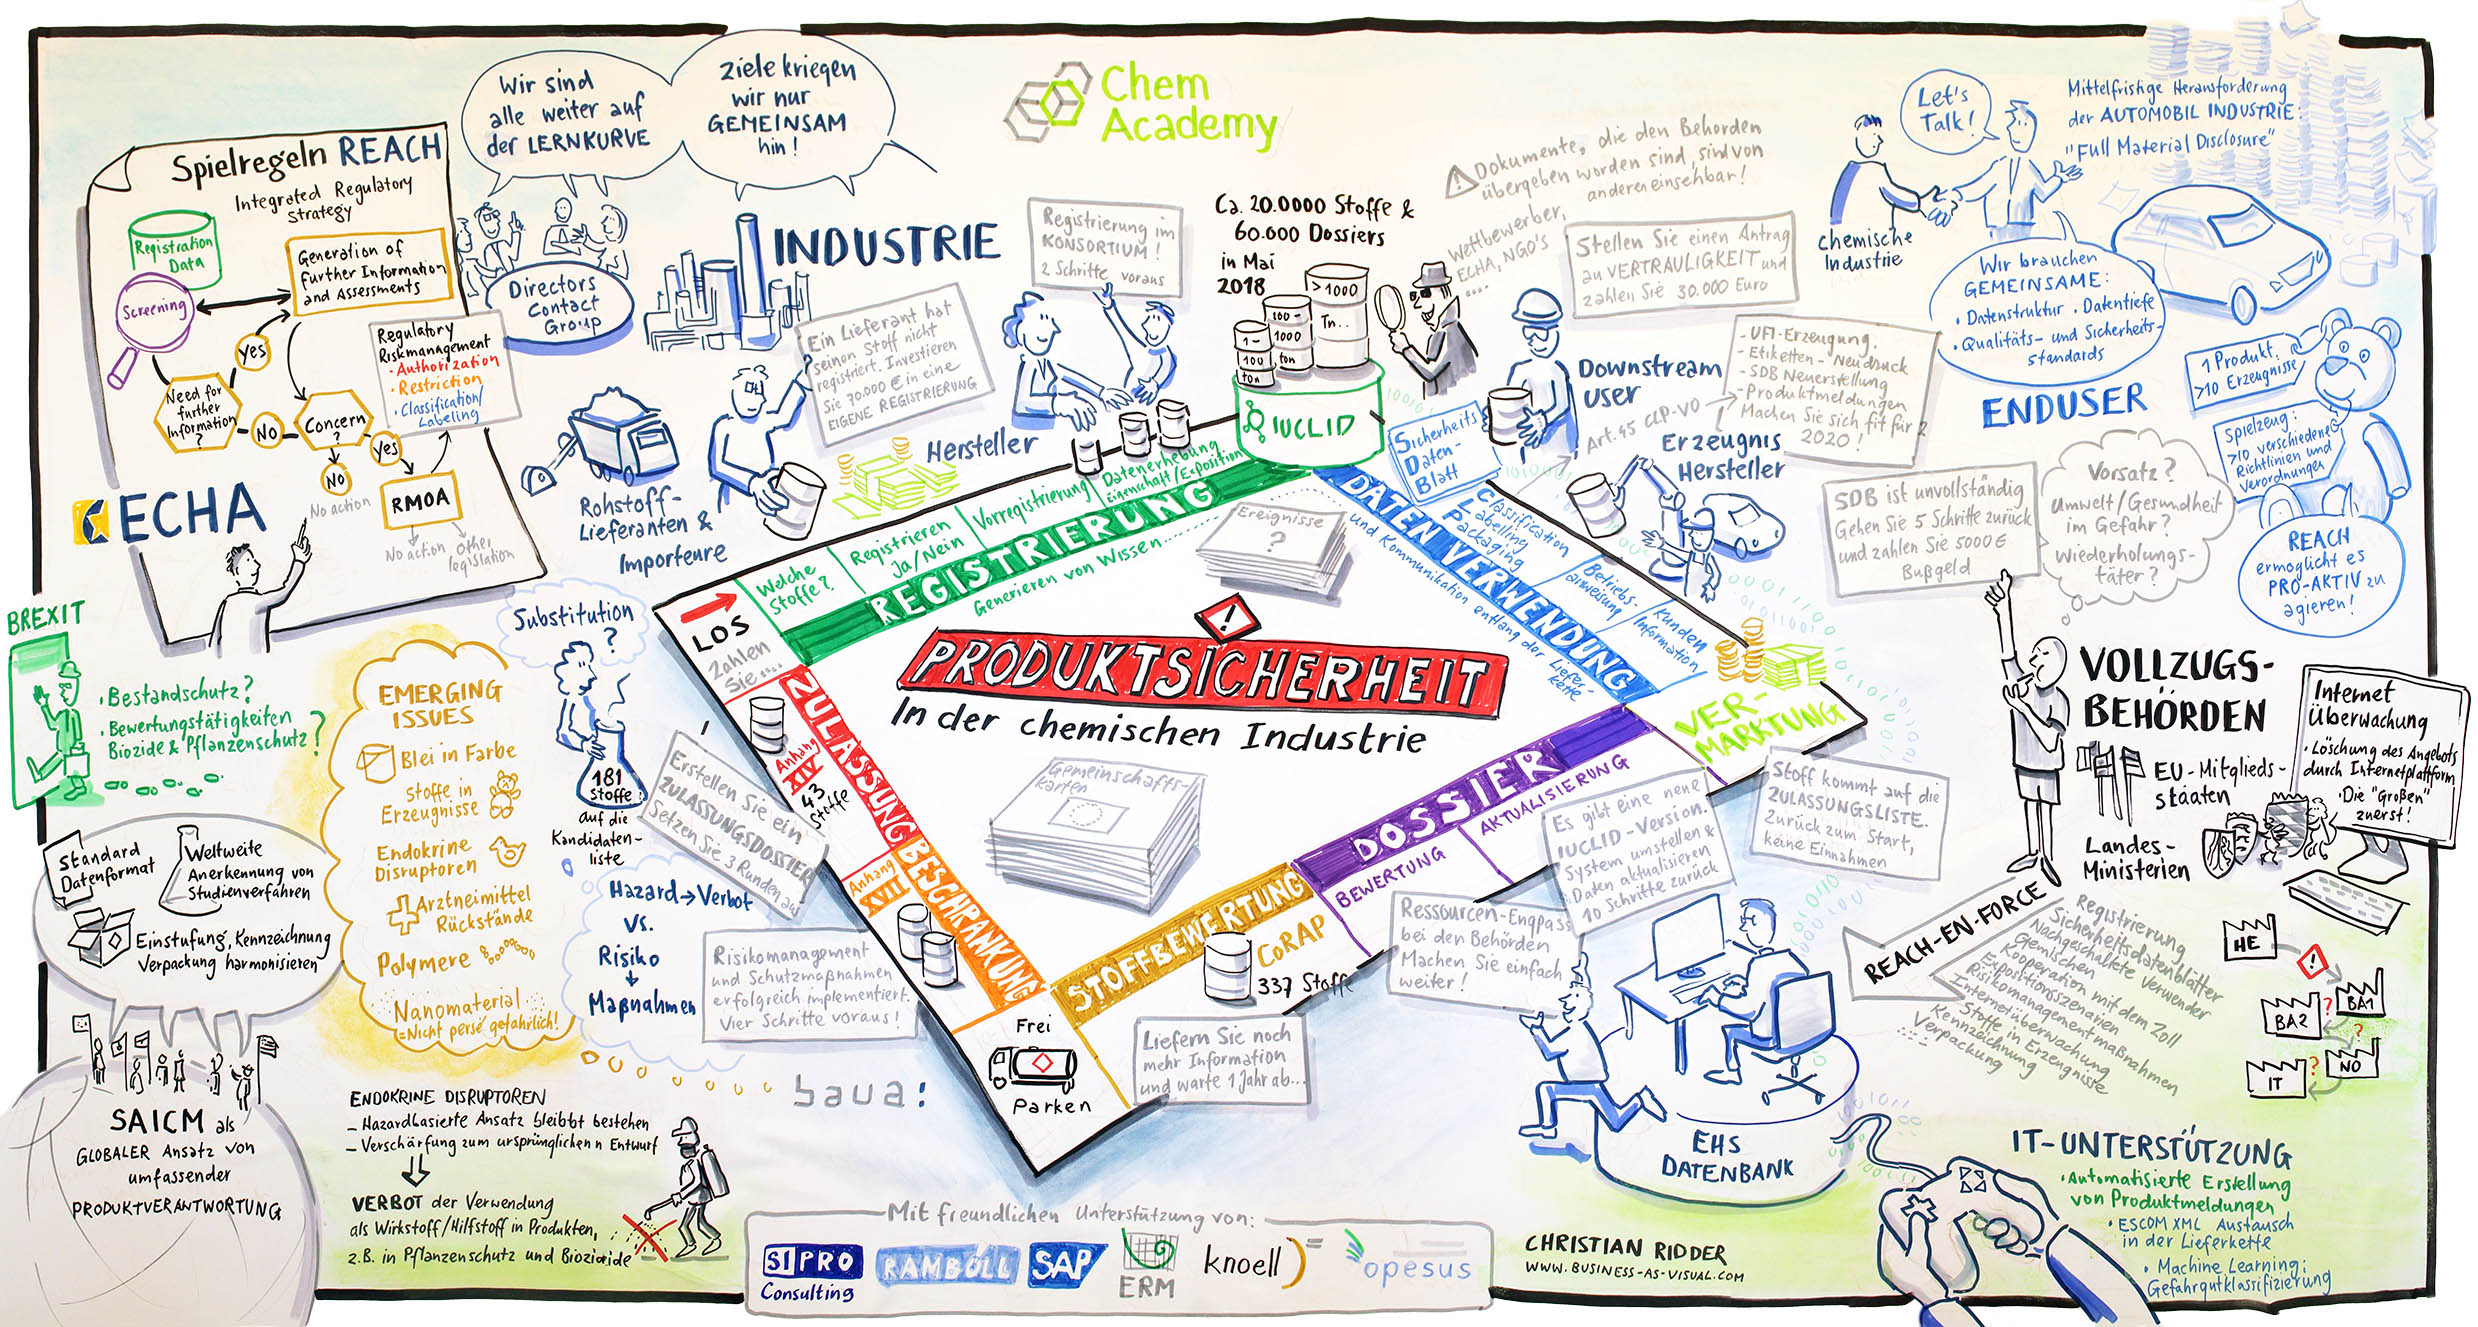 Christian Ridder, Graphic Recording, Produktsicherheit, Monopolie